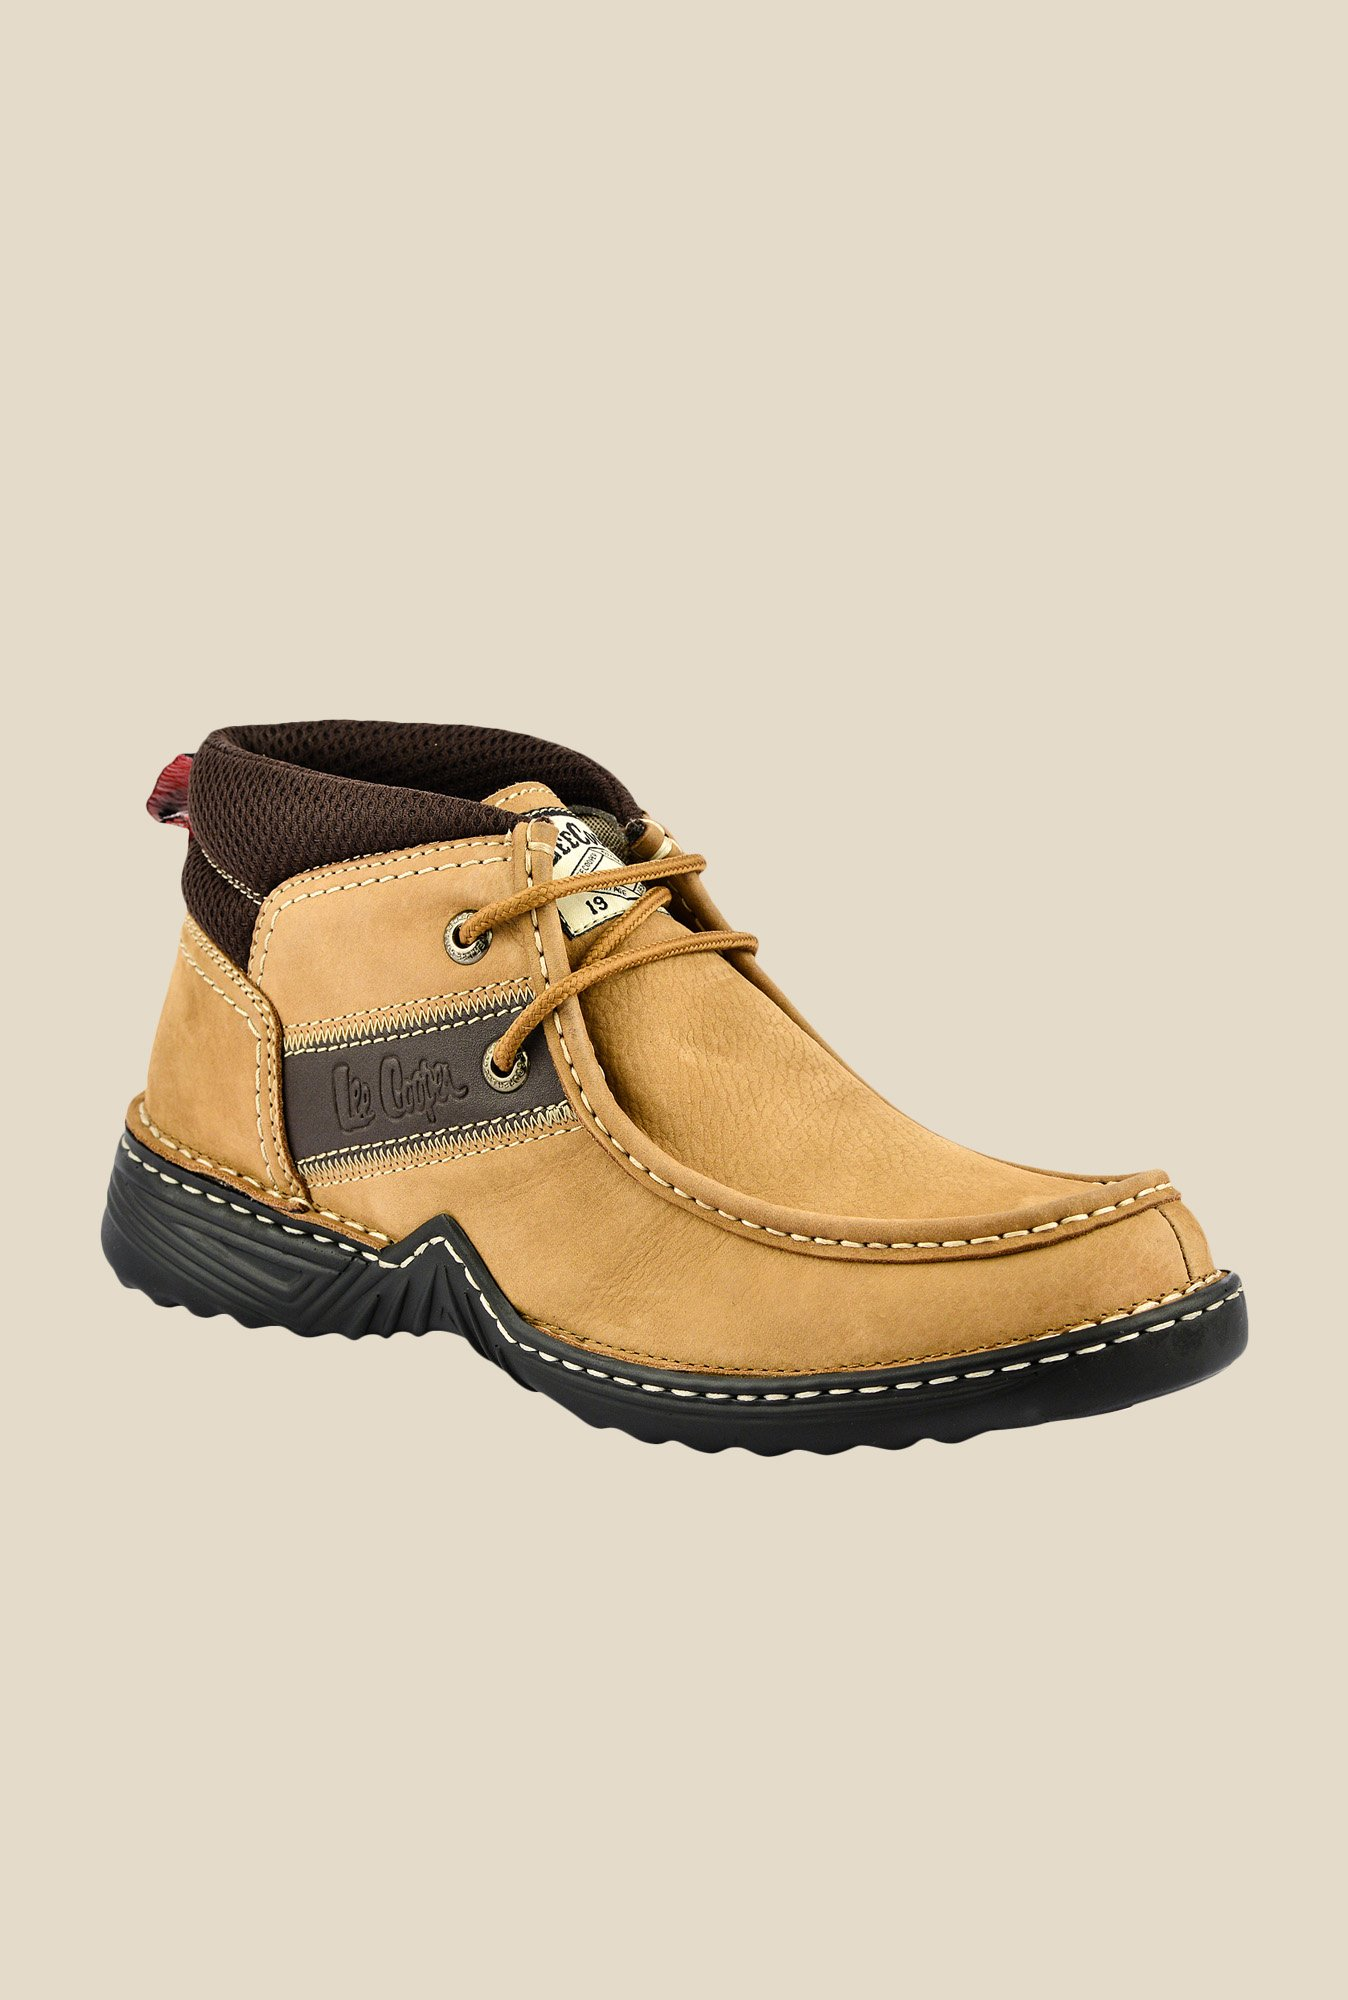 Lee Cooper Camel Casual Boots